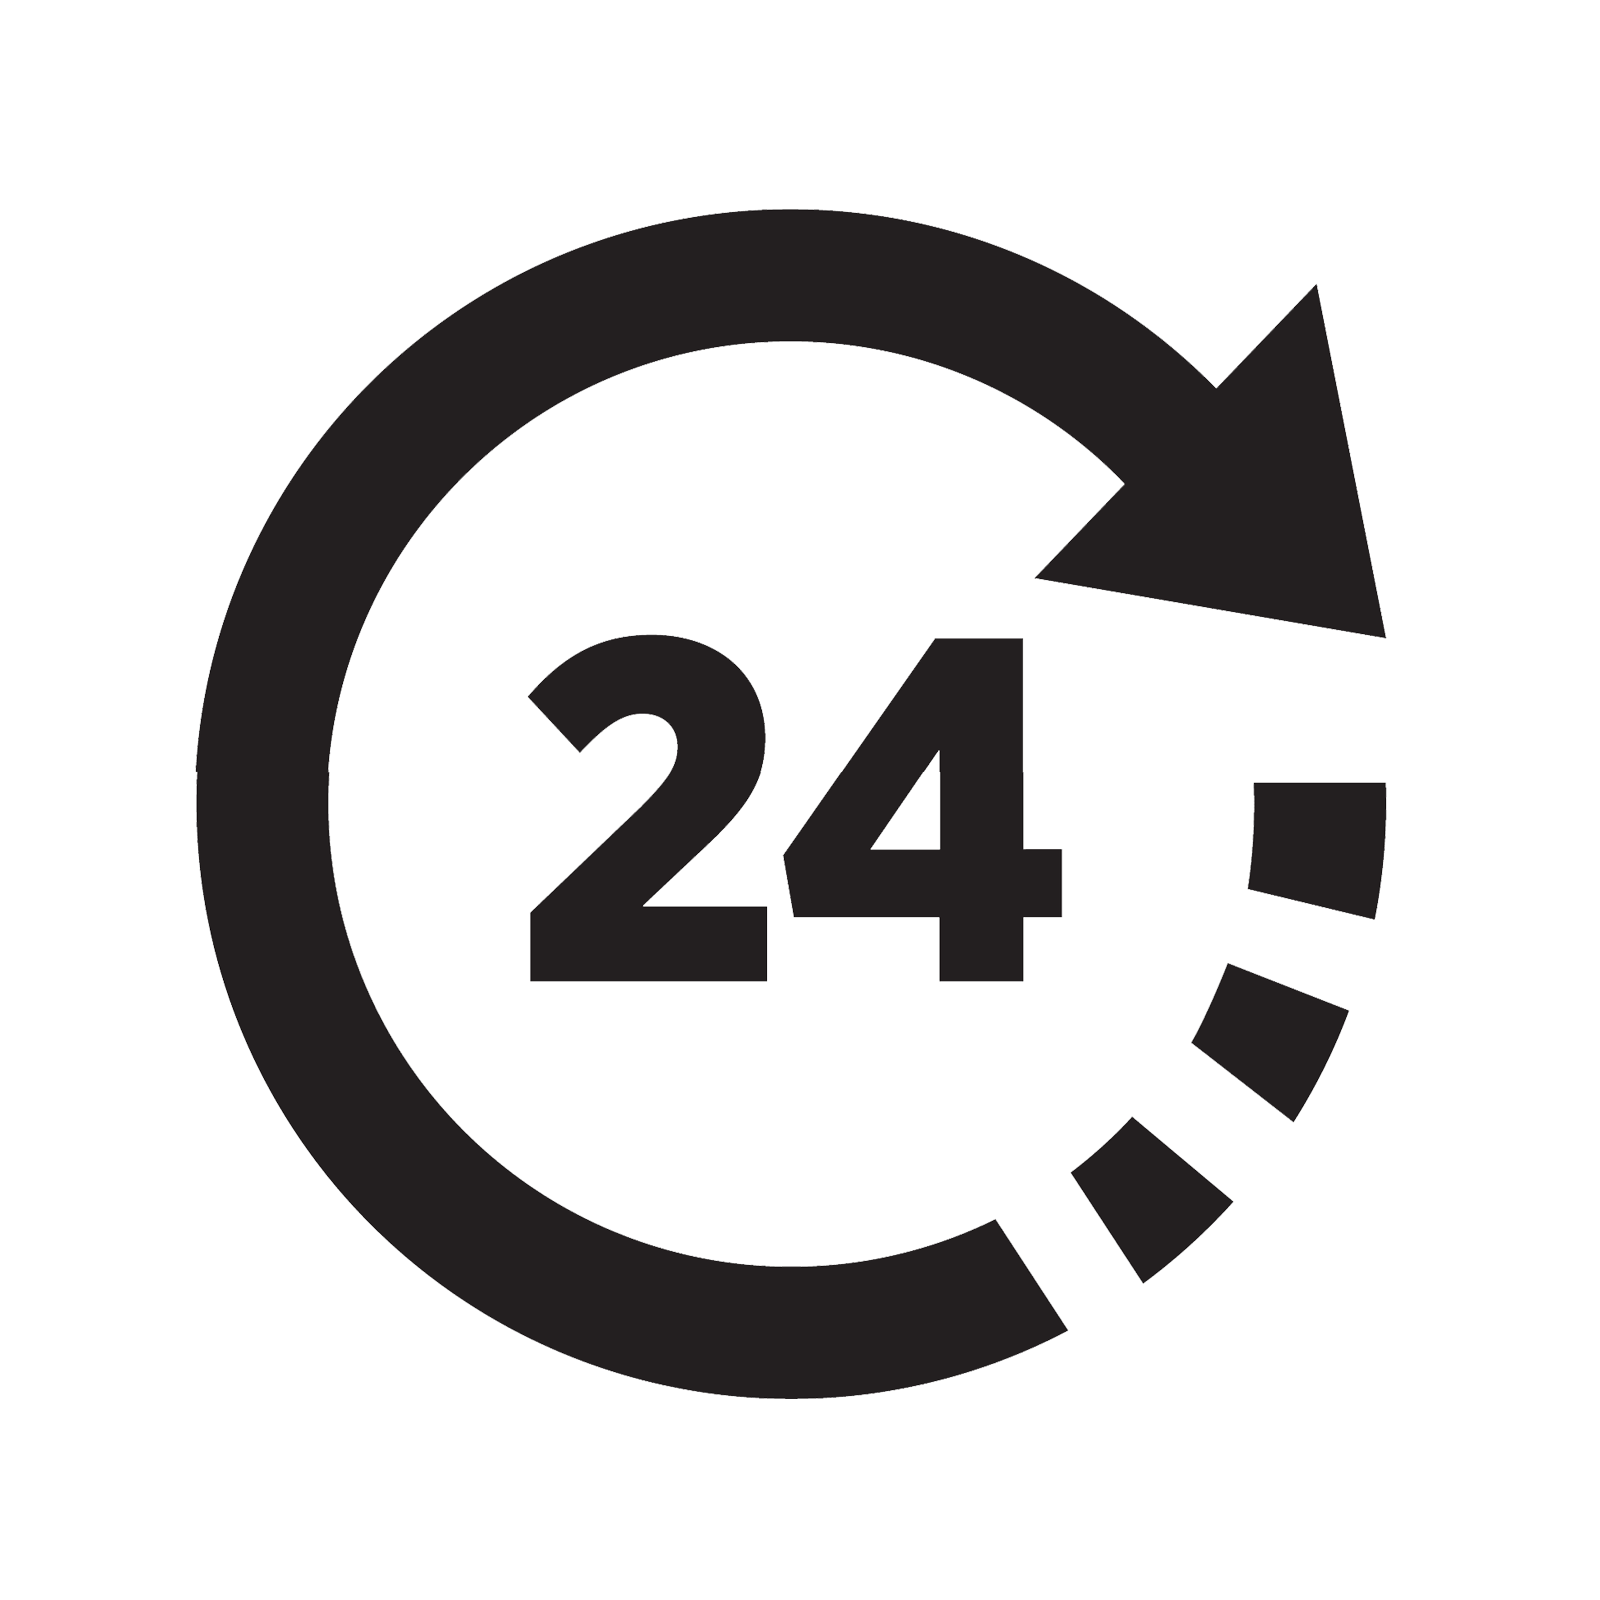 24-hours-icon-12